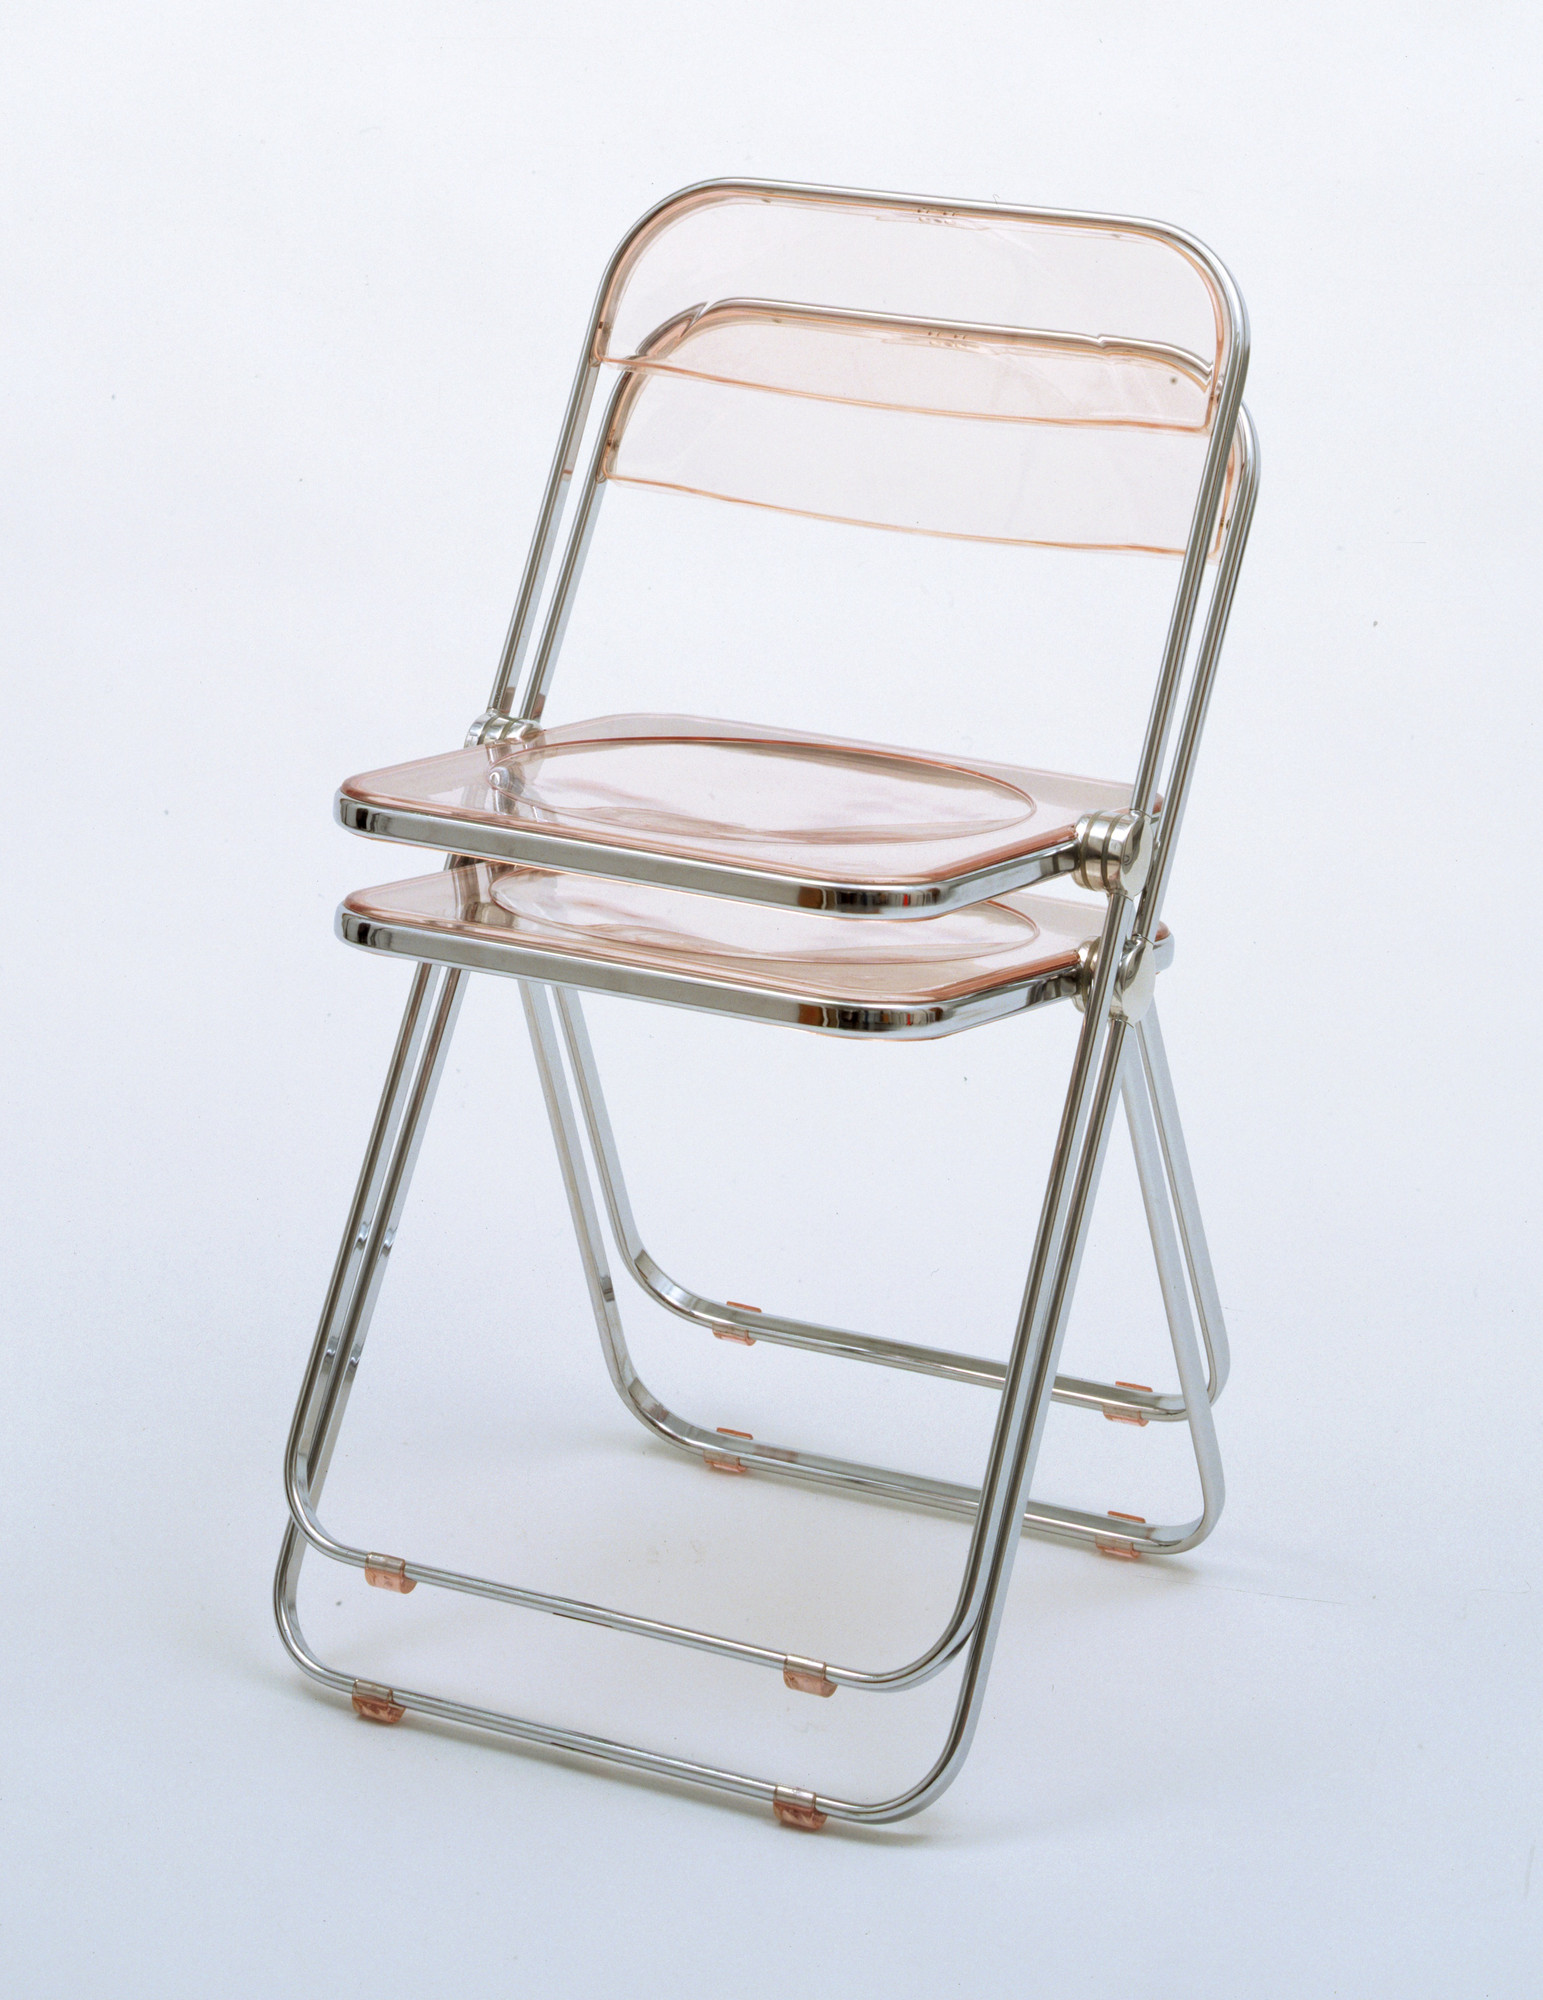 Giancarlo Piretti Plia Folding and Stacking Chair 1967